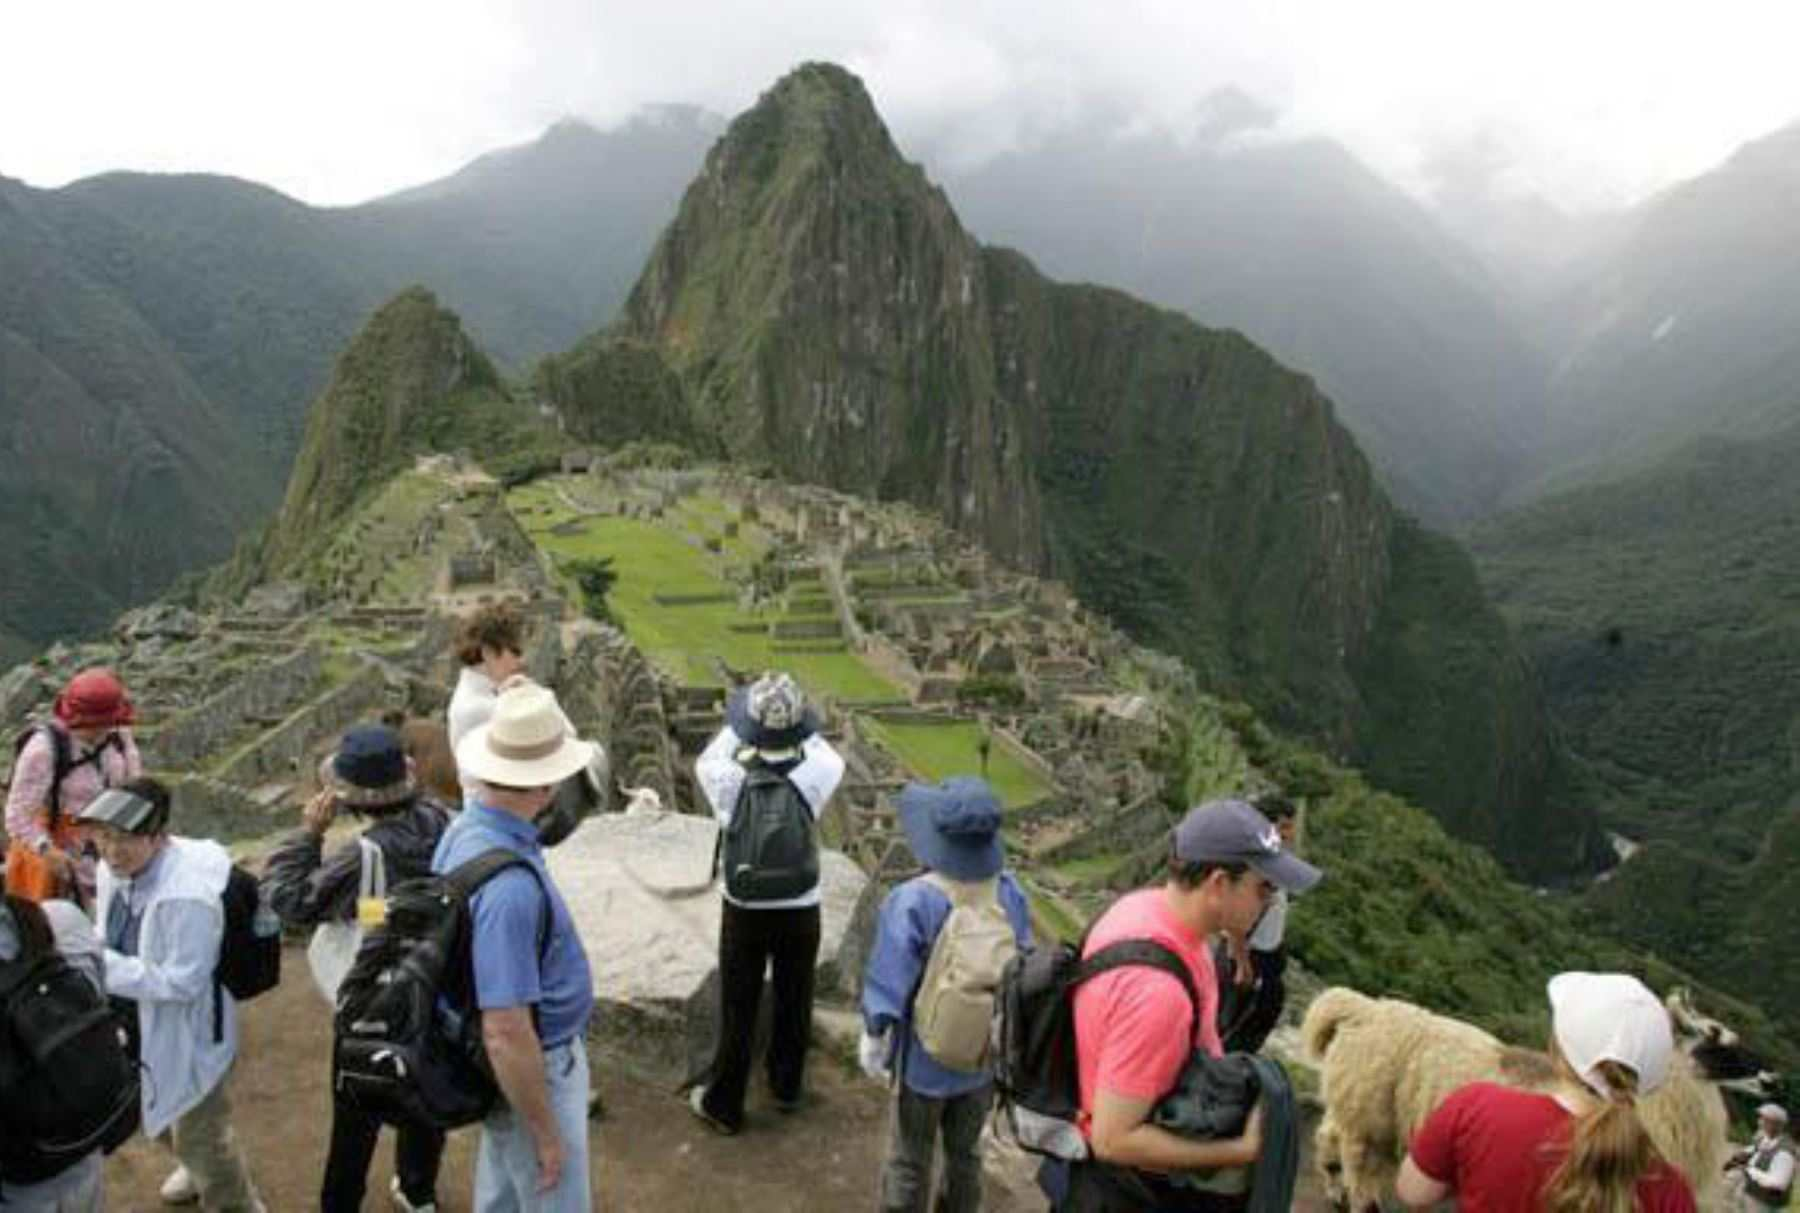 Peru's Travel Industry Expected to Make it Big in 2020